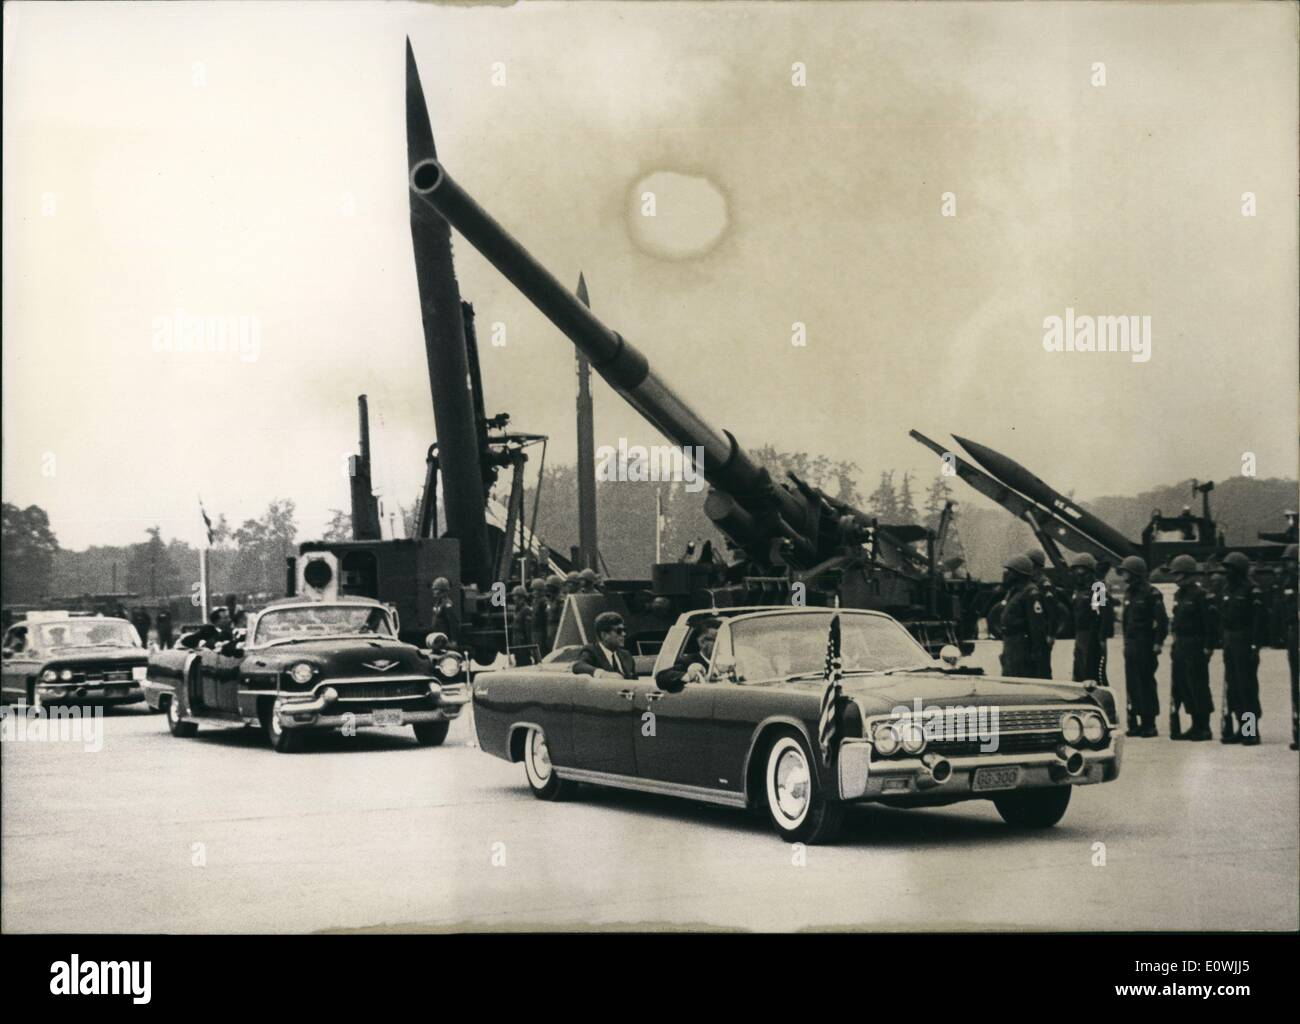 Jun. 06, 1963 - American President John F. Kennedy is shown visiting the city of Hanau to view a show of modern weapons. He was - Stock Image